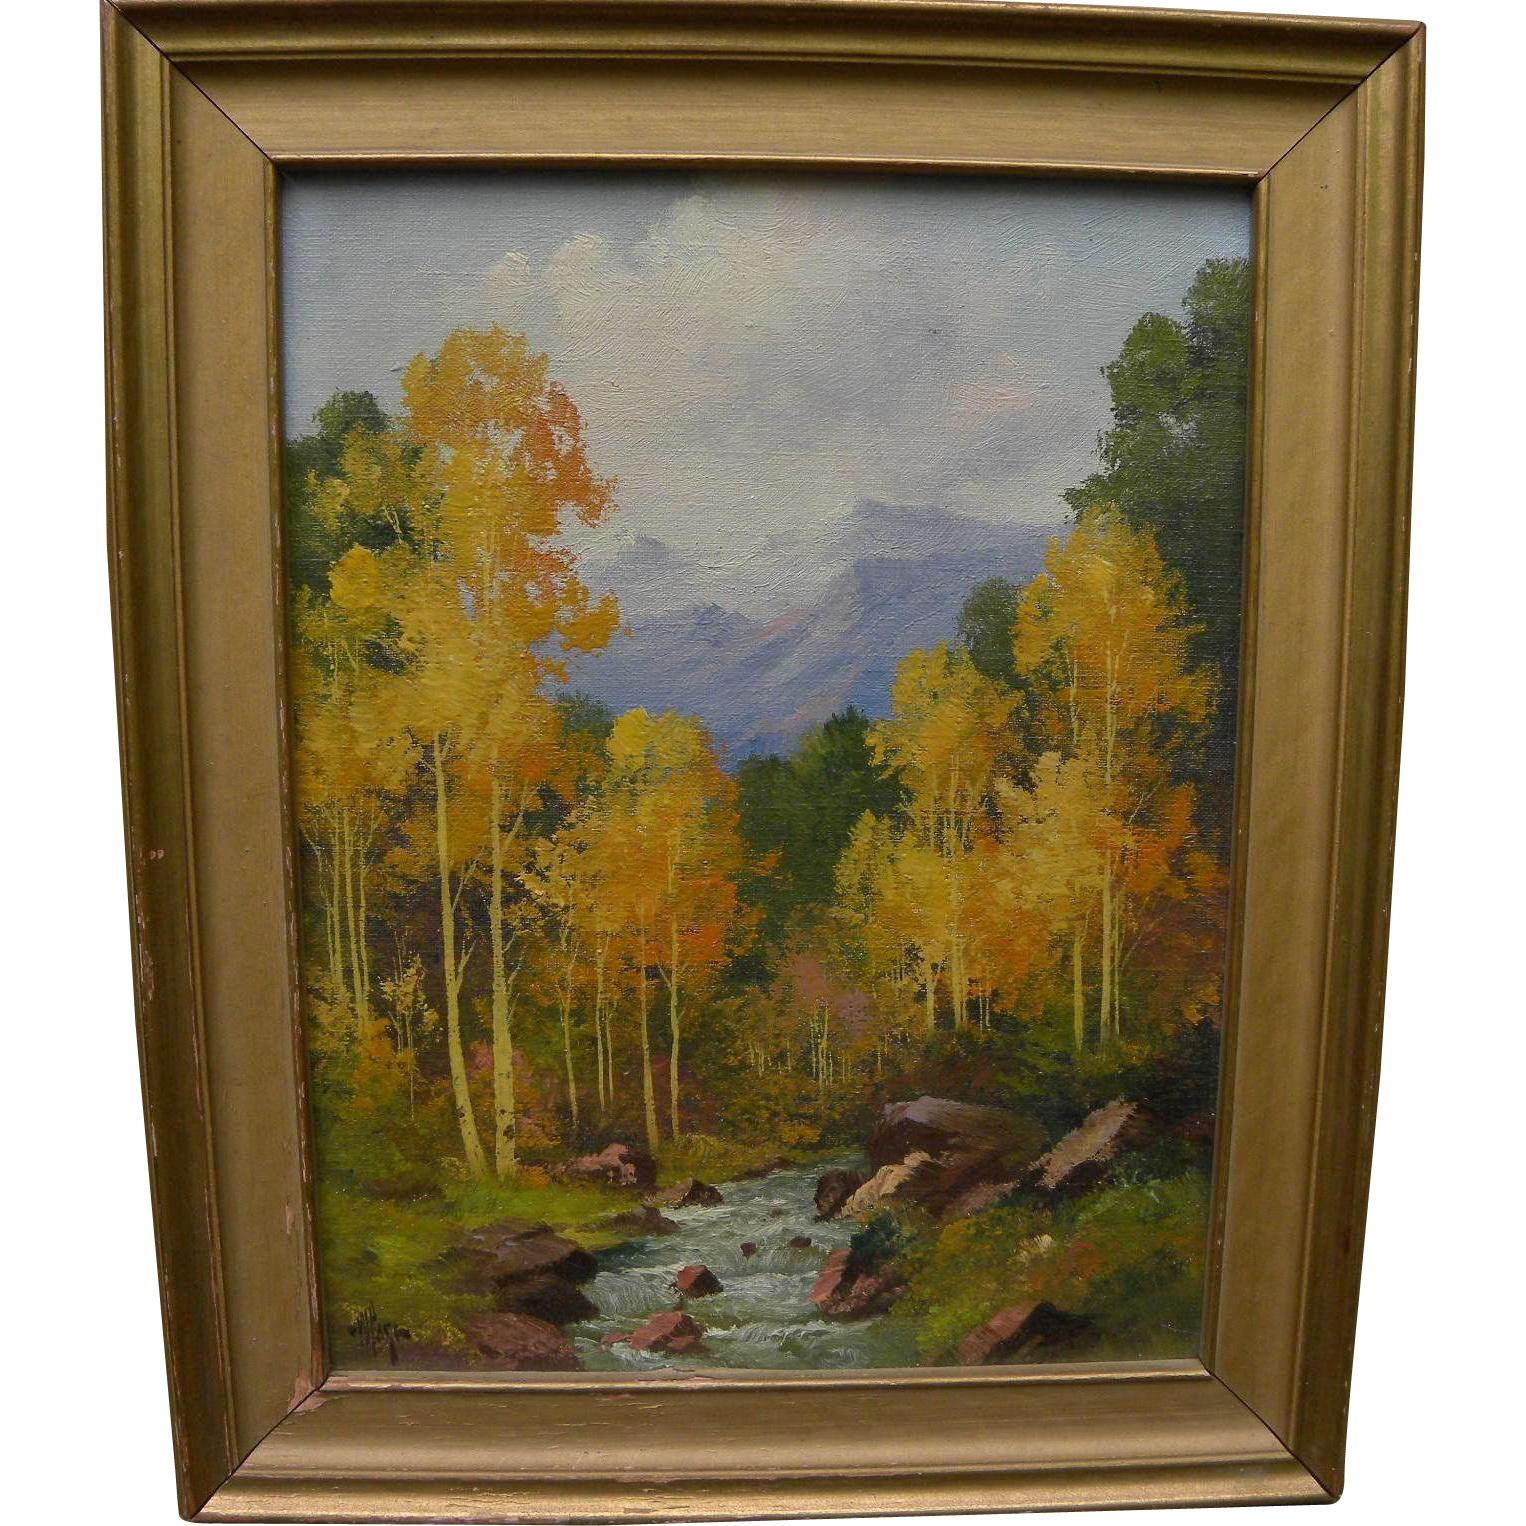 WILLARD PAGE (1885-1958) Southwestern art Colorado landscape painting of flaming aspen in the fall